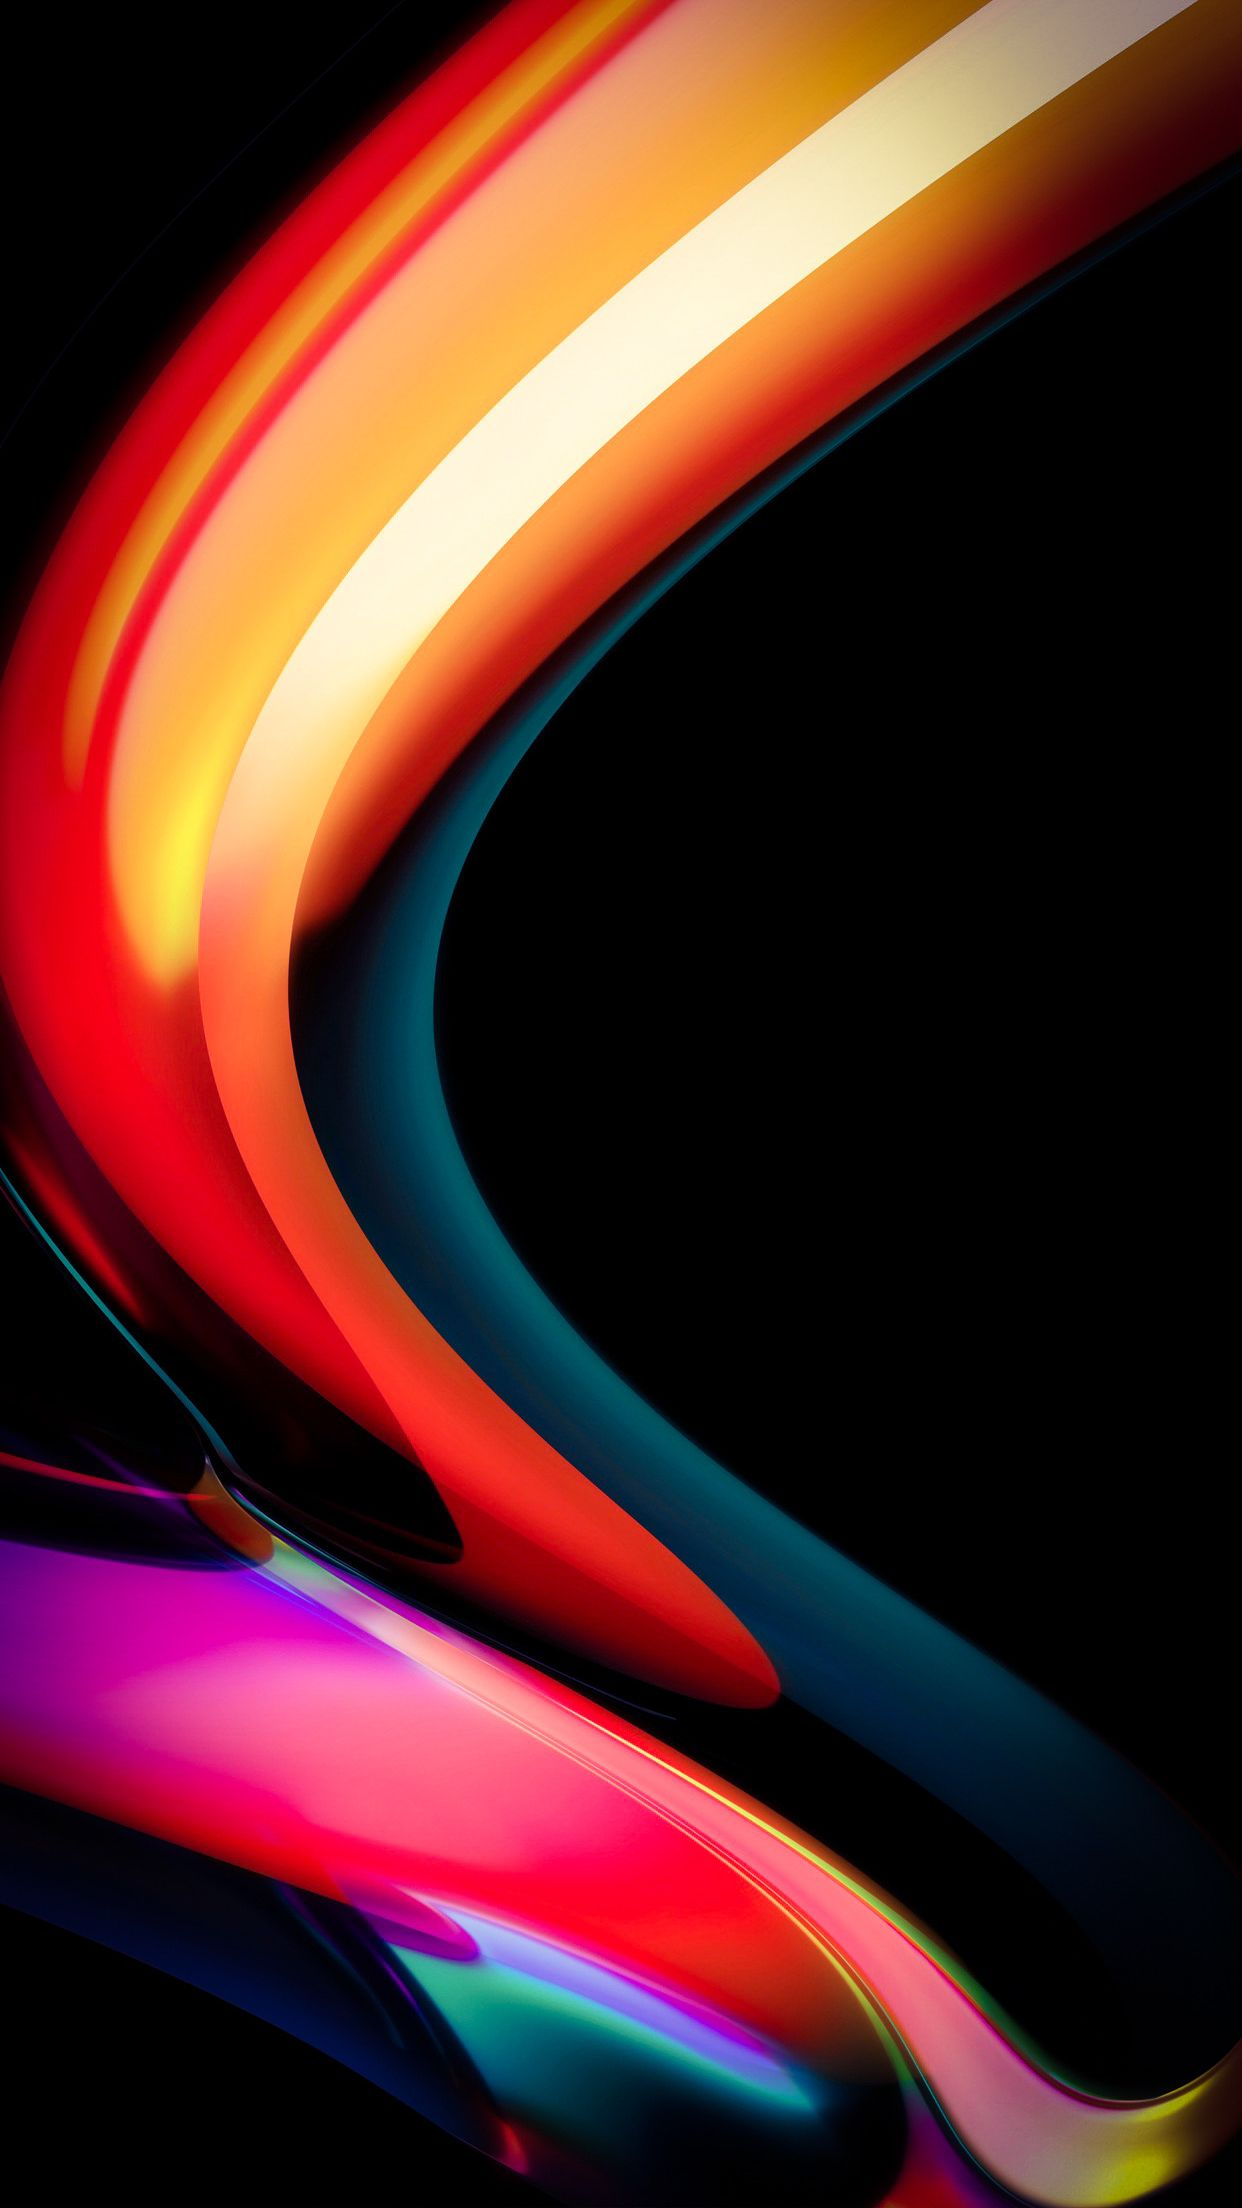 Iphone 12 Pro Wallpapers Kolpaper Awesome Free Hd Wallpapers